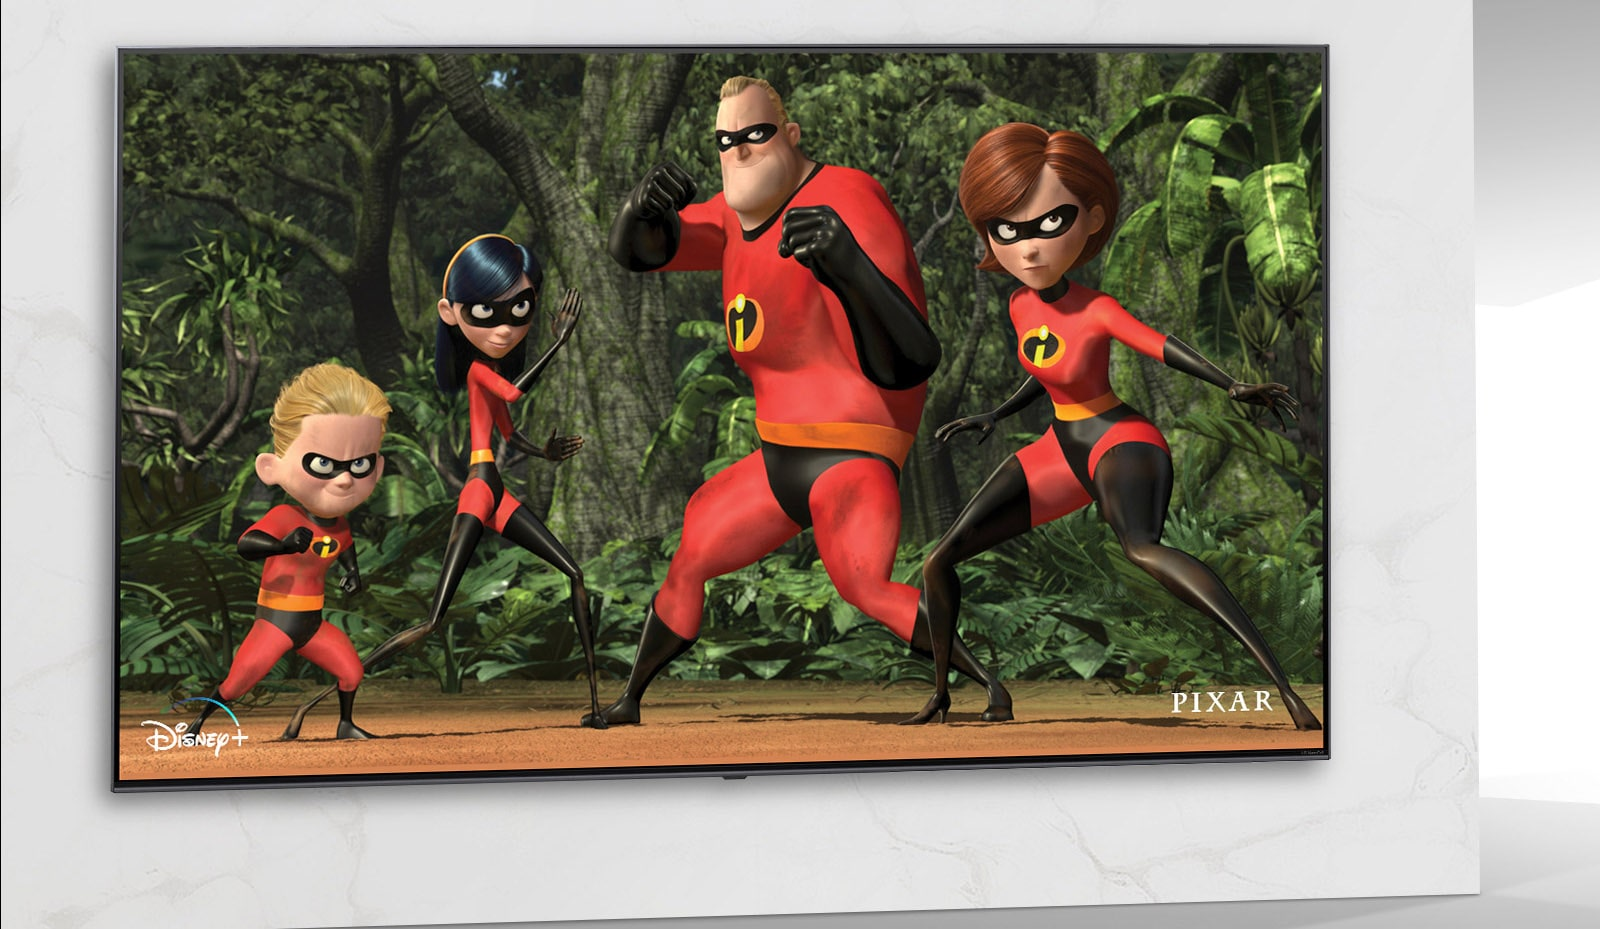 Pixar Incredibles, the image on the TV screen